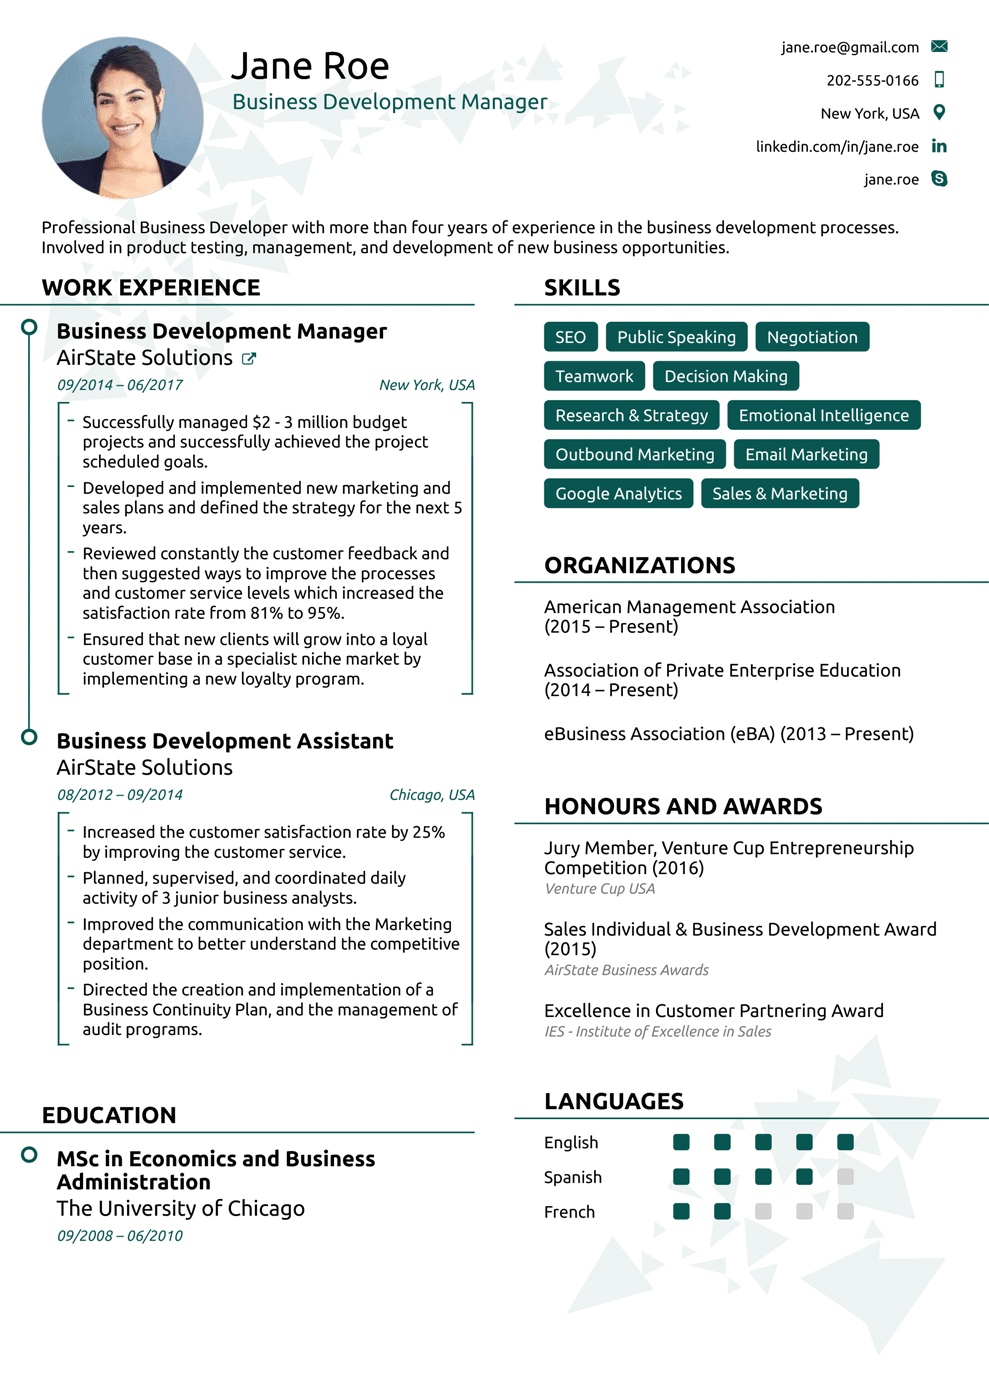 2018 Professional Resume Templates  As They Should Be [8+]. Lebenslauf Studium Bwl. Cv Layout Template Download. Lebenslauf In Englisch Fuer Schueler. Lebenslauf Mit Html Erstellen. Lebenslauf Muster Kostenlos In Word. Lebenslauf Zusatzqualifikationen. Cv Template Word Project Manager. Lebenslauf Englisch Text